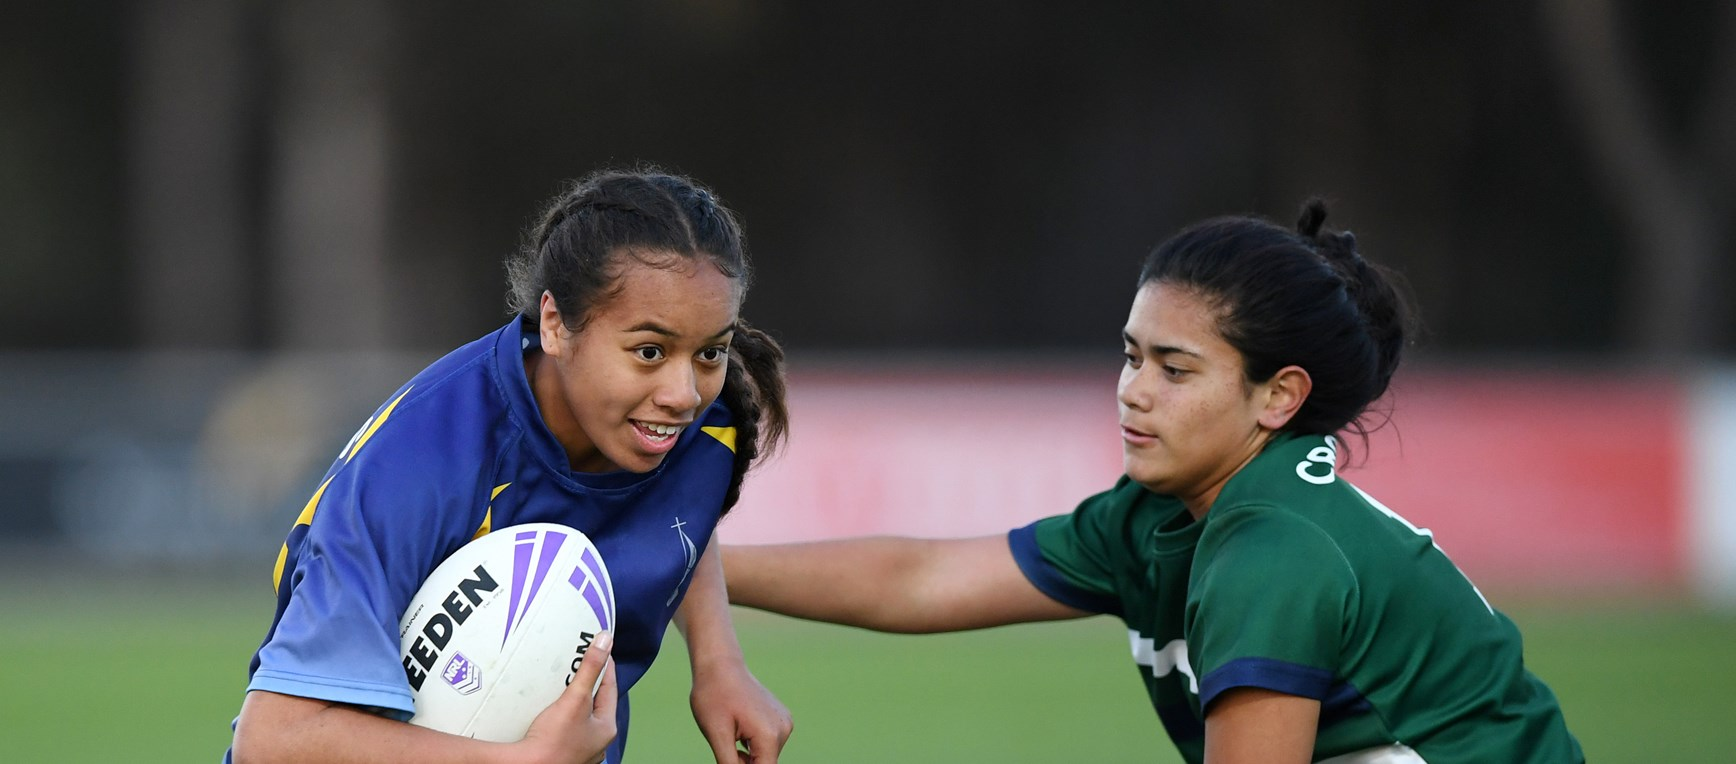 GALLERY | 2018 Female State Finals Day